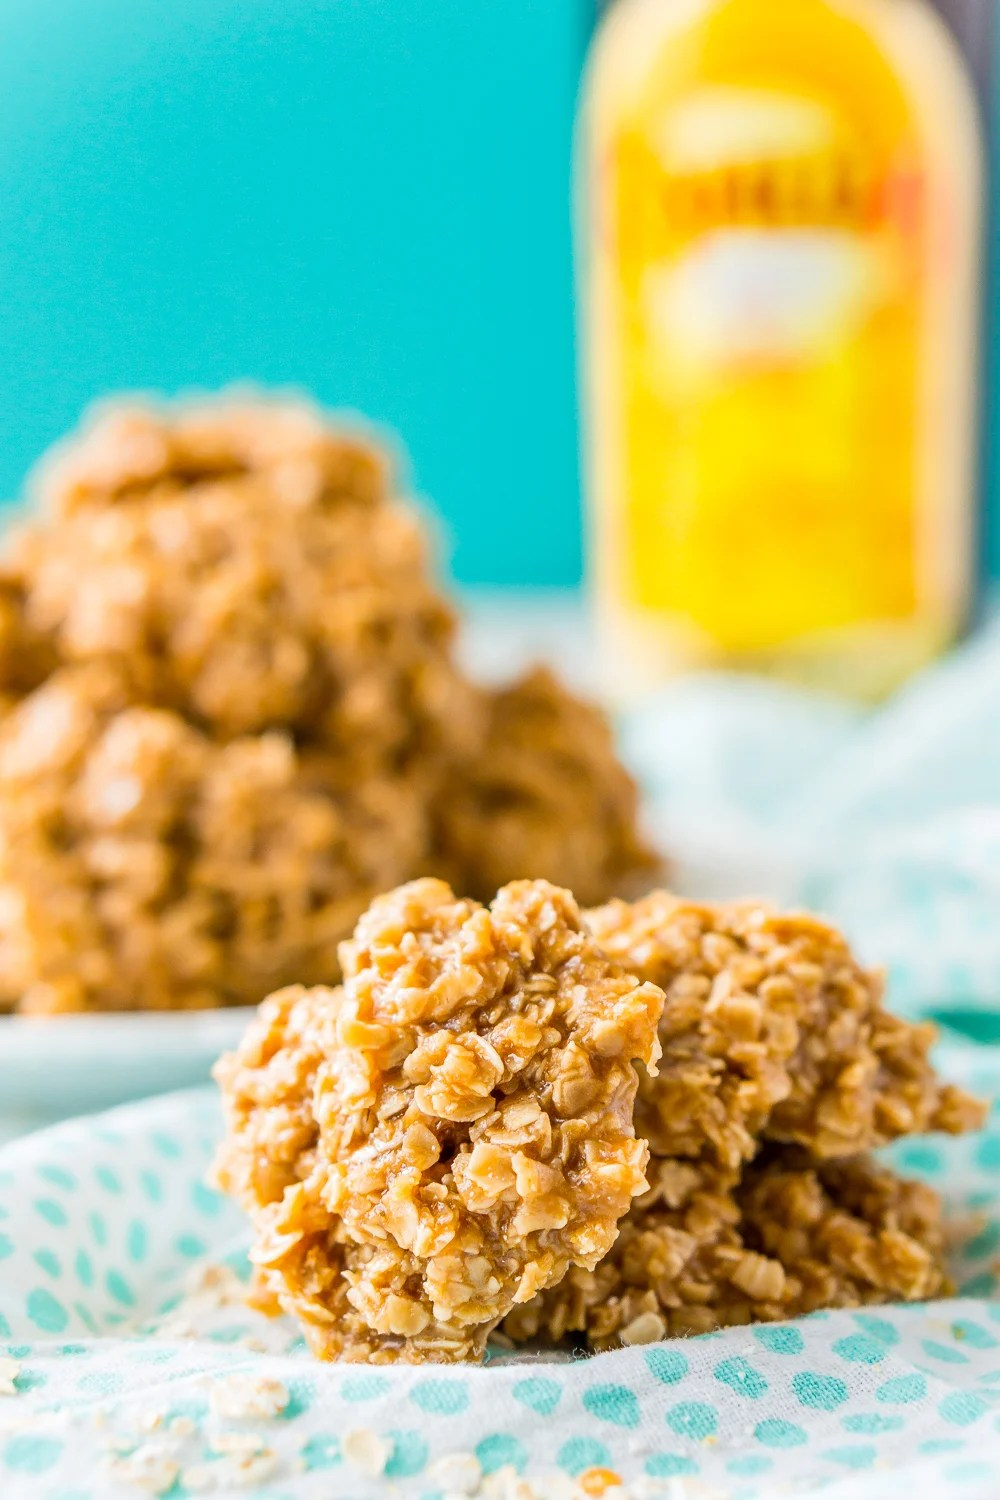 Kahlua No Bake Cookies with white and blue napkin.